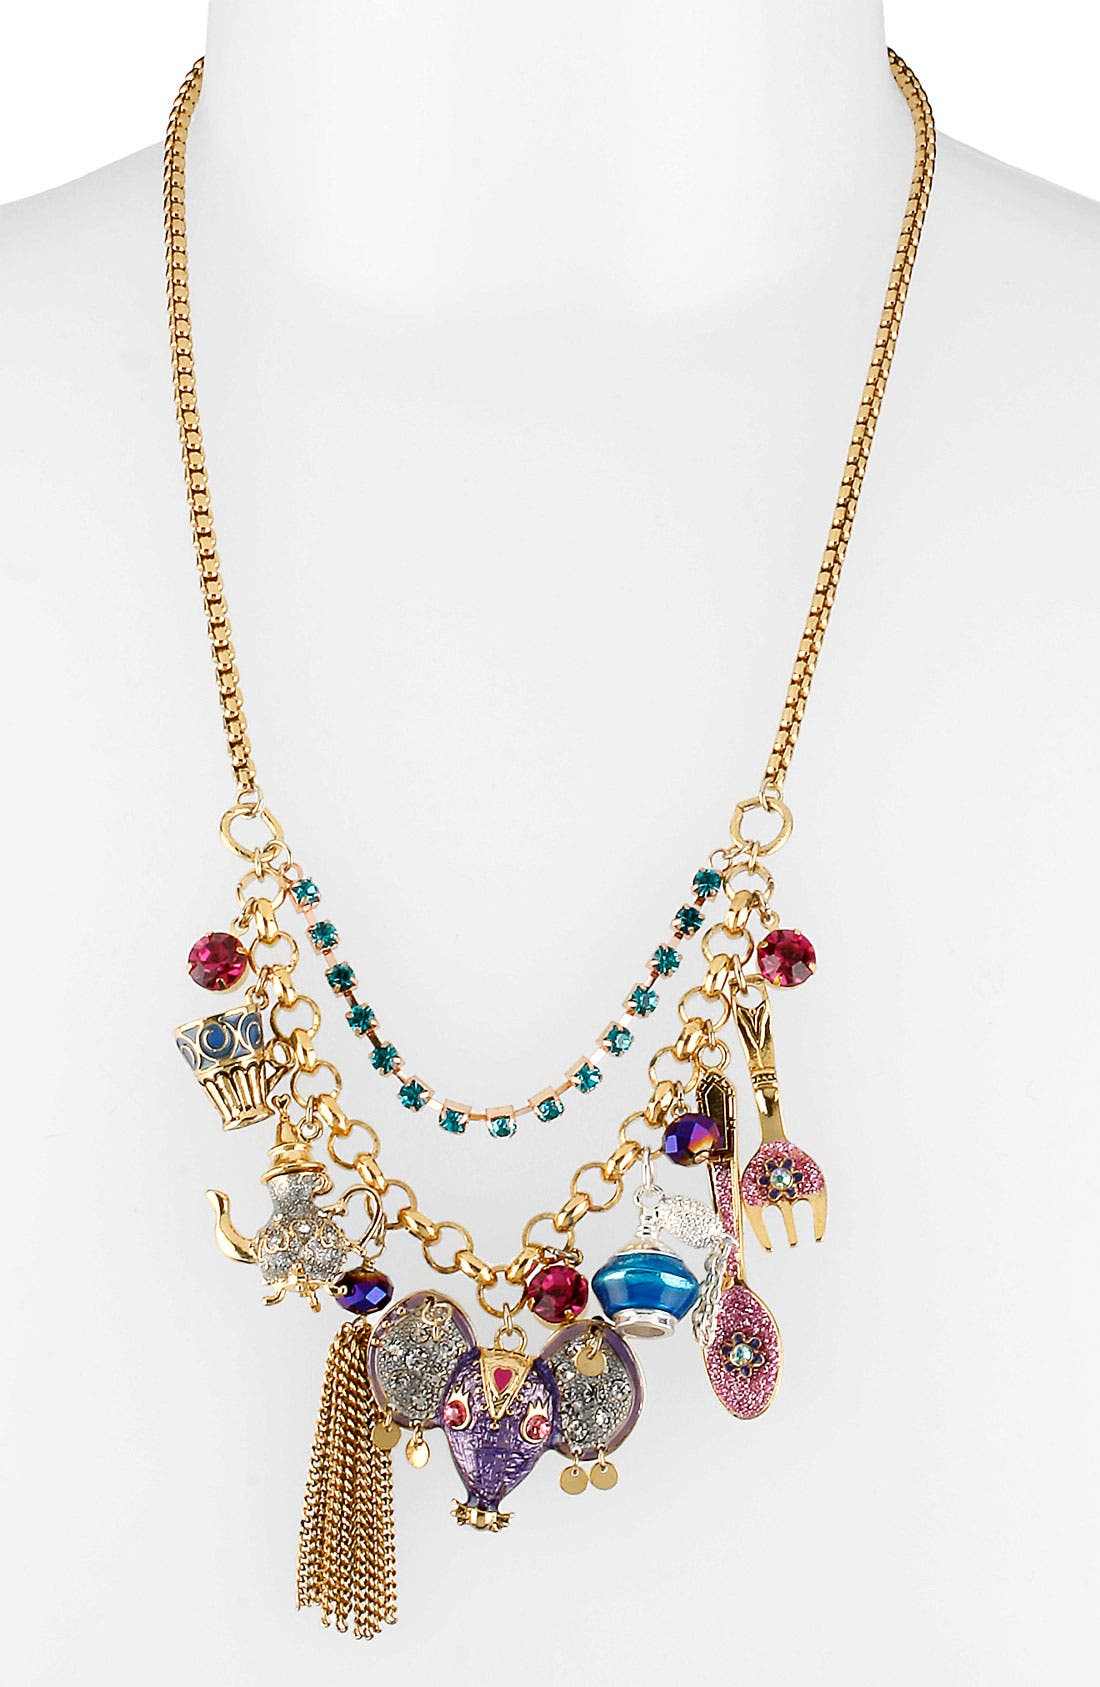 Alternate Image 1 Selected - Betsey Johnson 'Morocco Adventure' Frontal Necklace